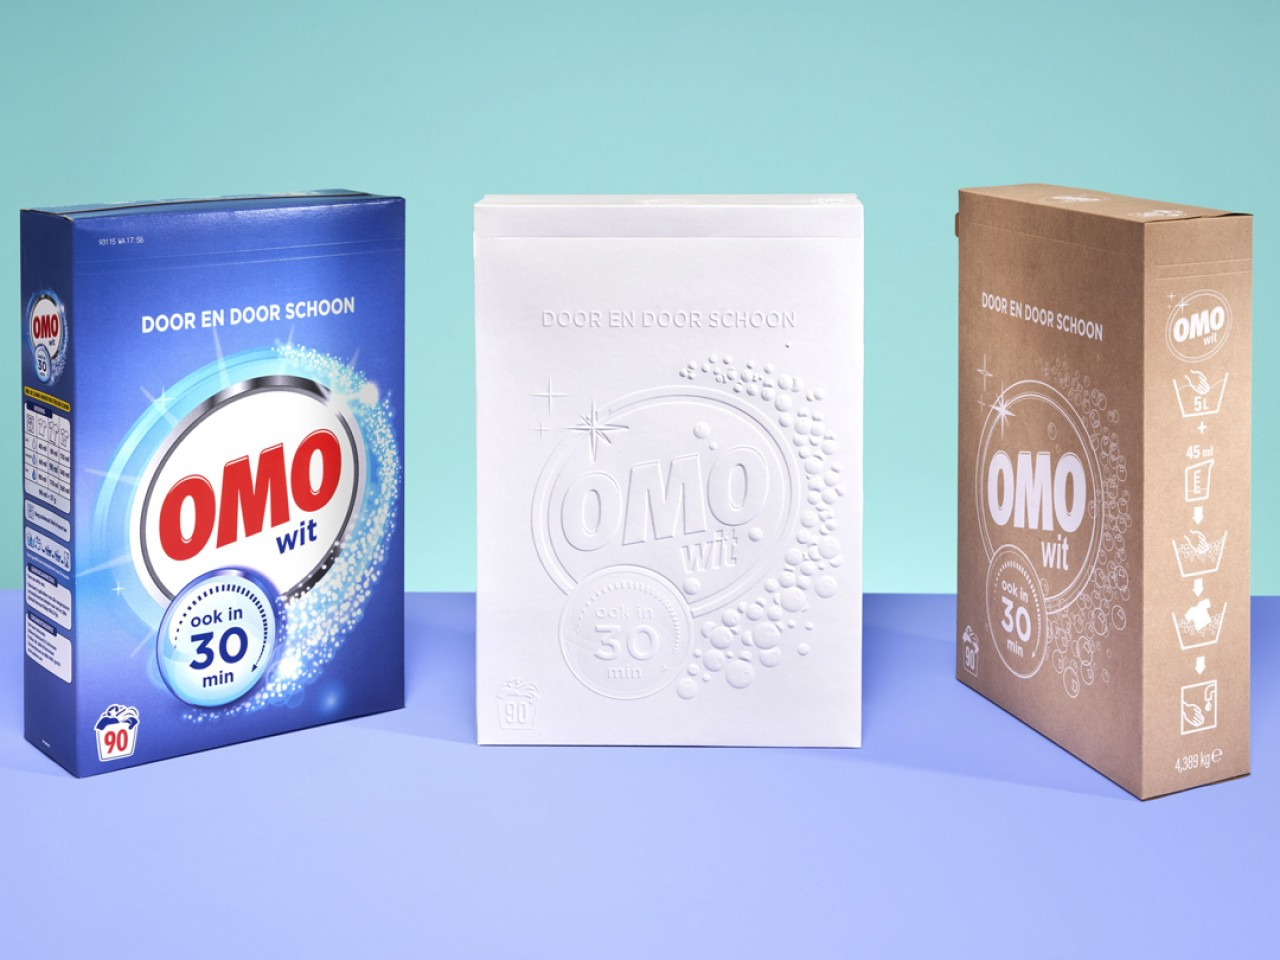 White is the new green - Reducing materials to design eco-friendly and sustainable laundry packaging.